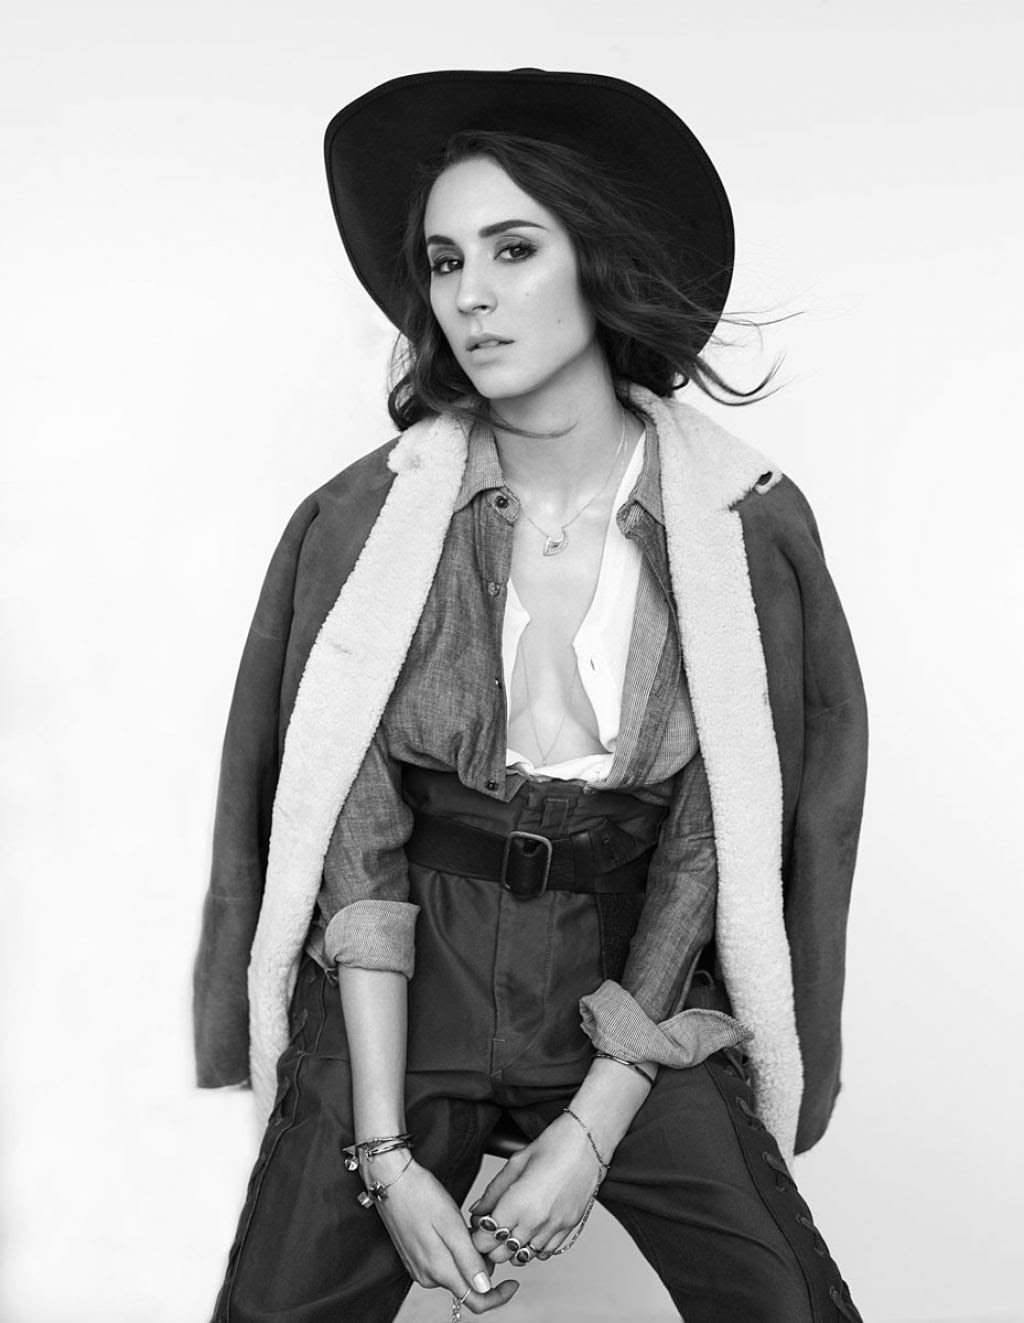 http://celebmafia.com/wp-content/uploads/2014/09/troian-bellisario-flaunt-magazine-136-the-distress-issue_2.jpg